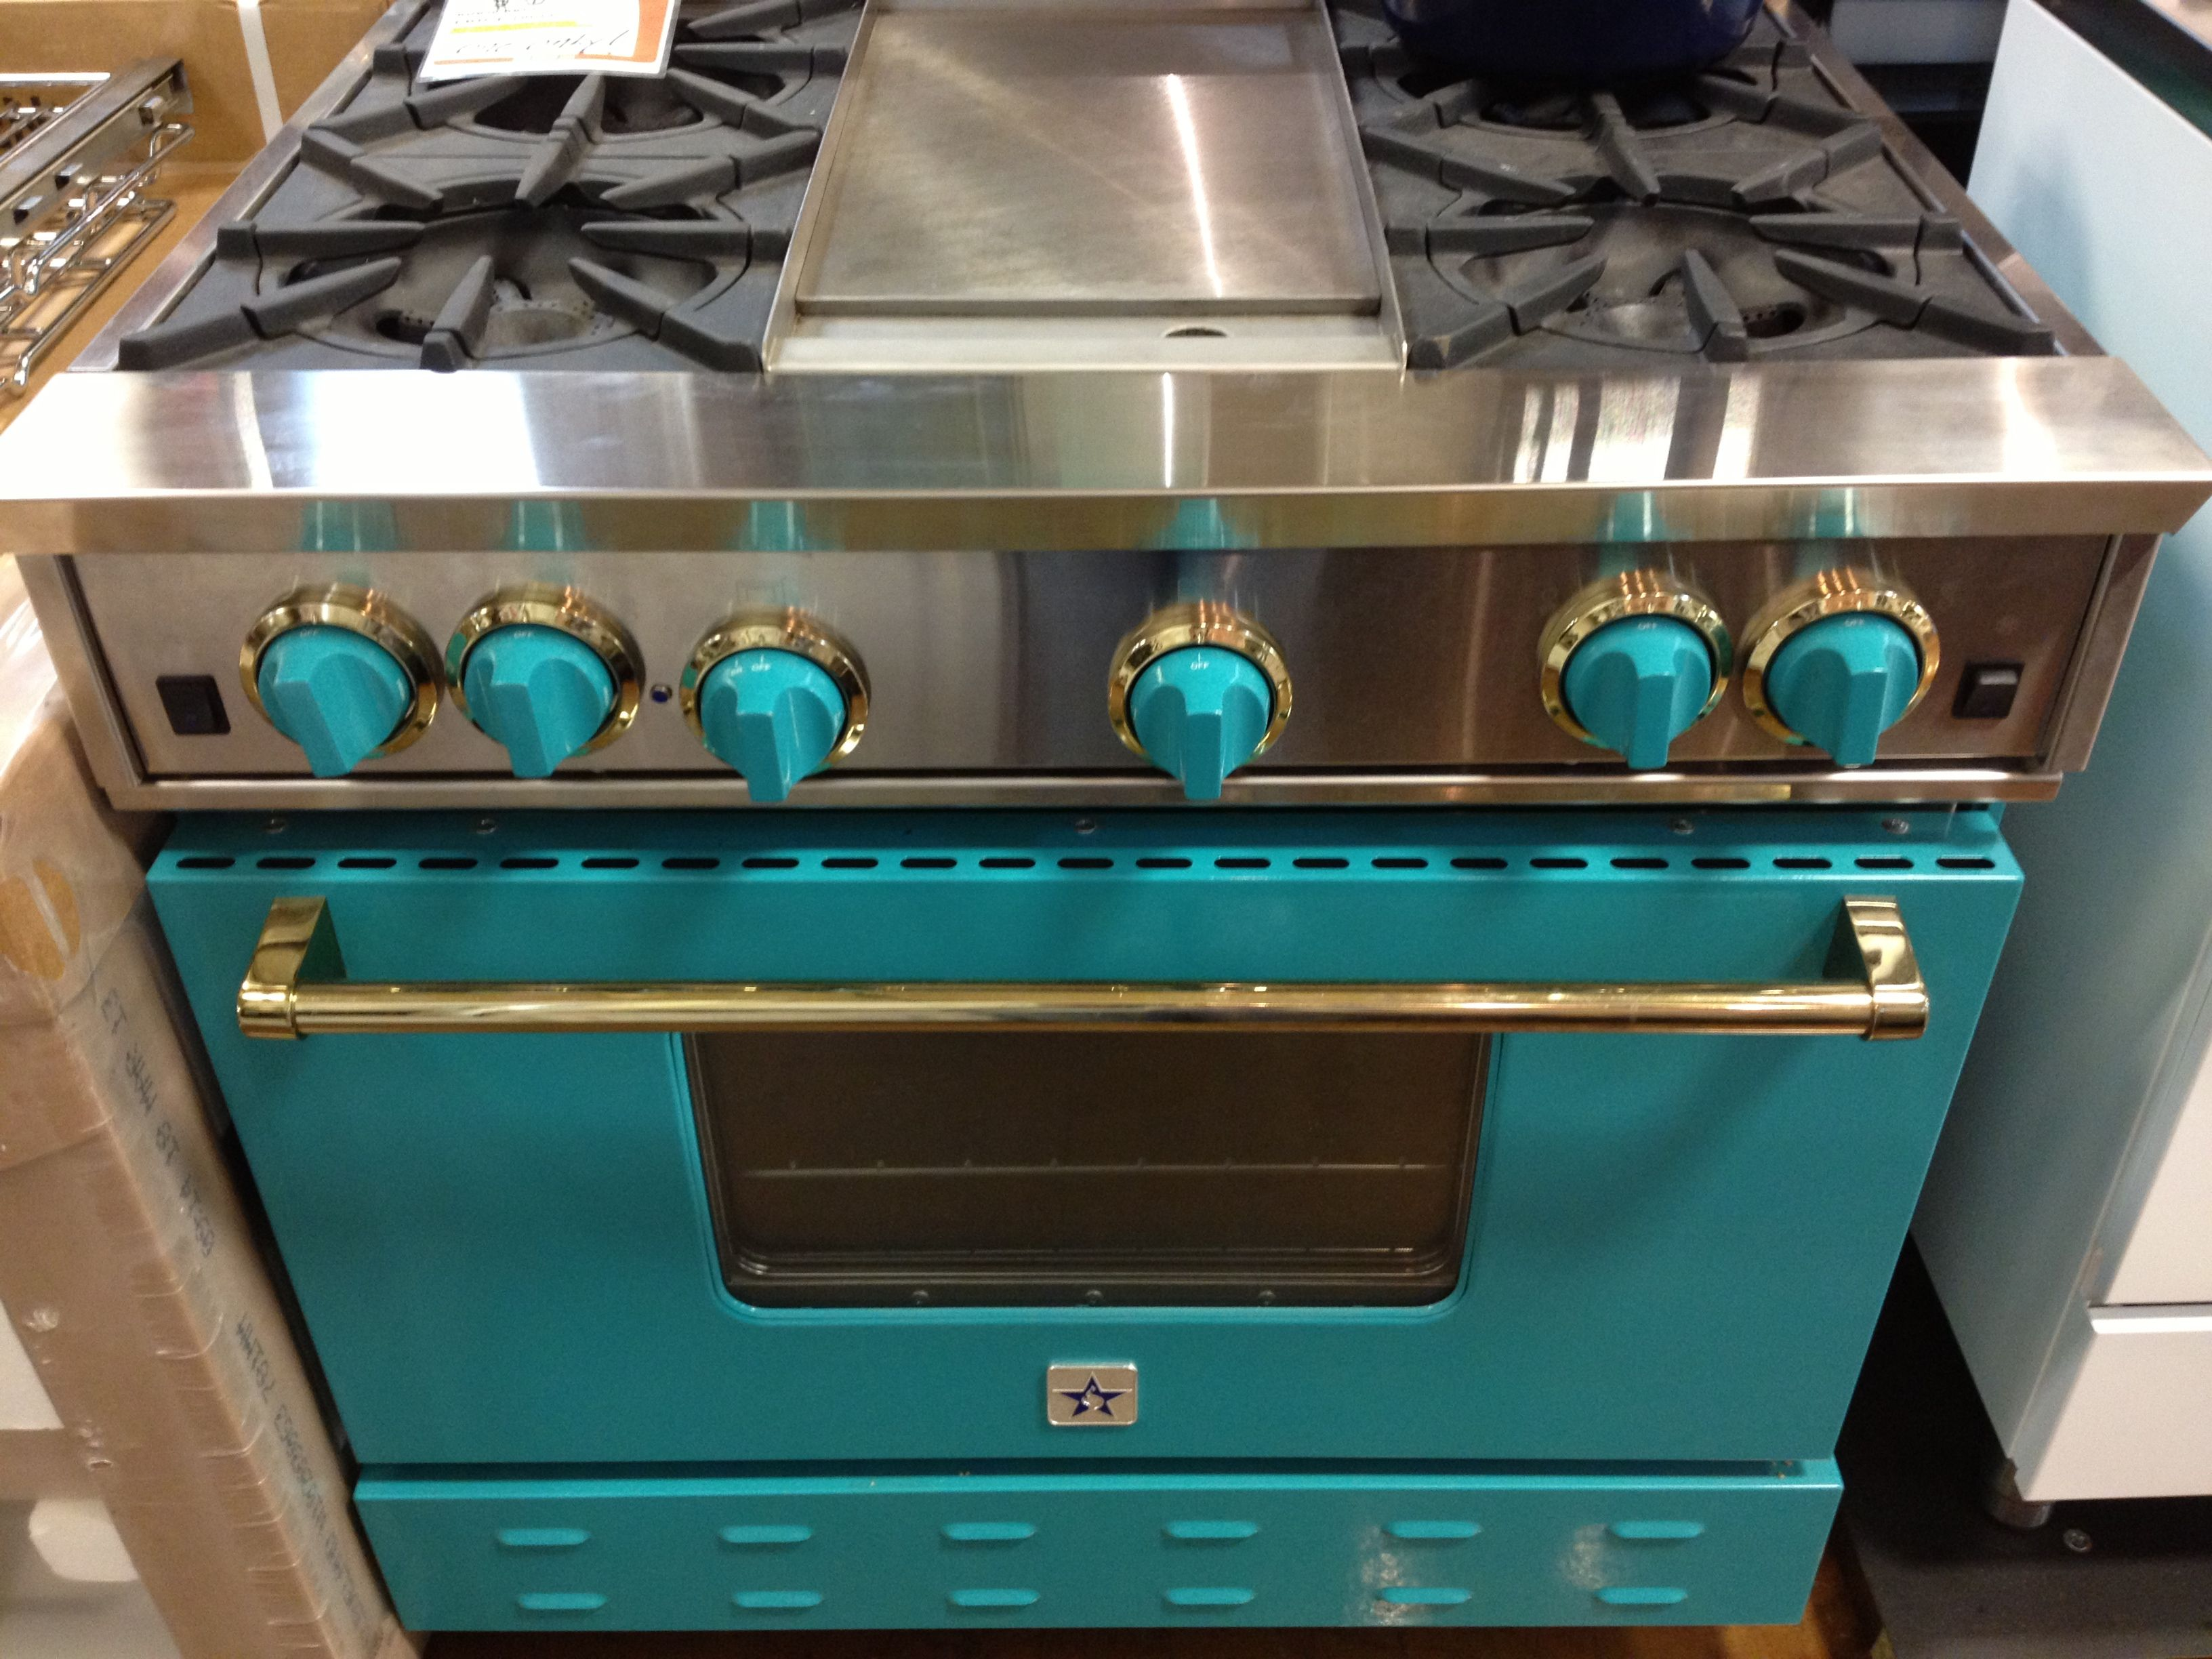 I M In Love With This Blue Star Stove It Comes In Every Color Of The Rainbow Seriously Farmhouse Chic Kitchen Kitchen Inspirations Kitchen Renovation